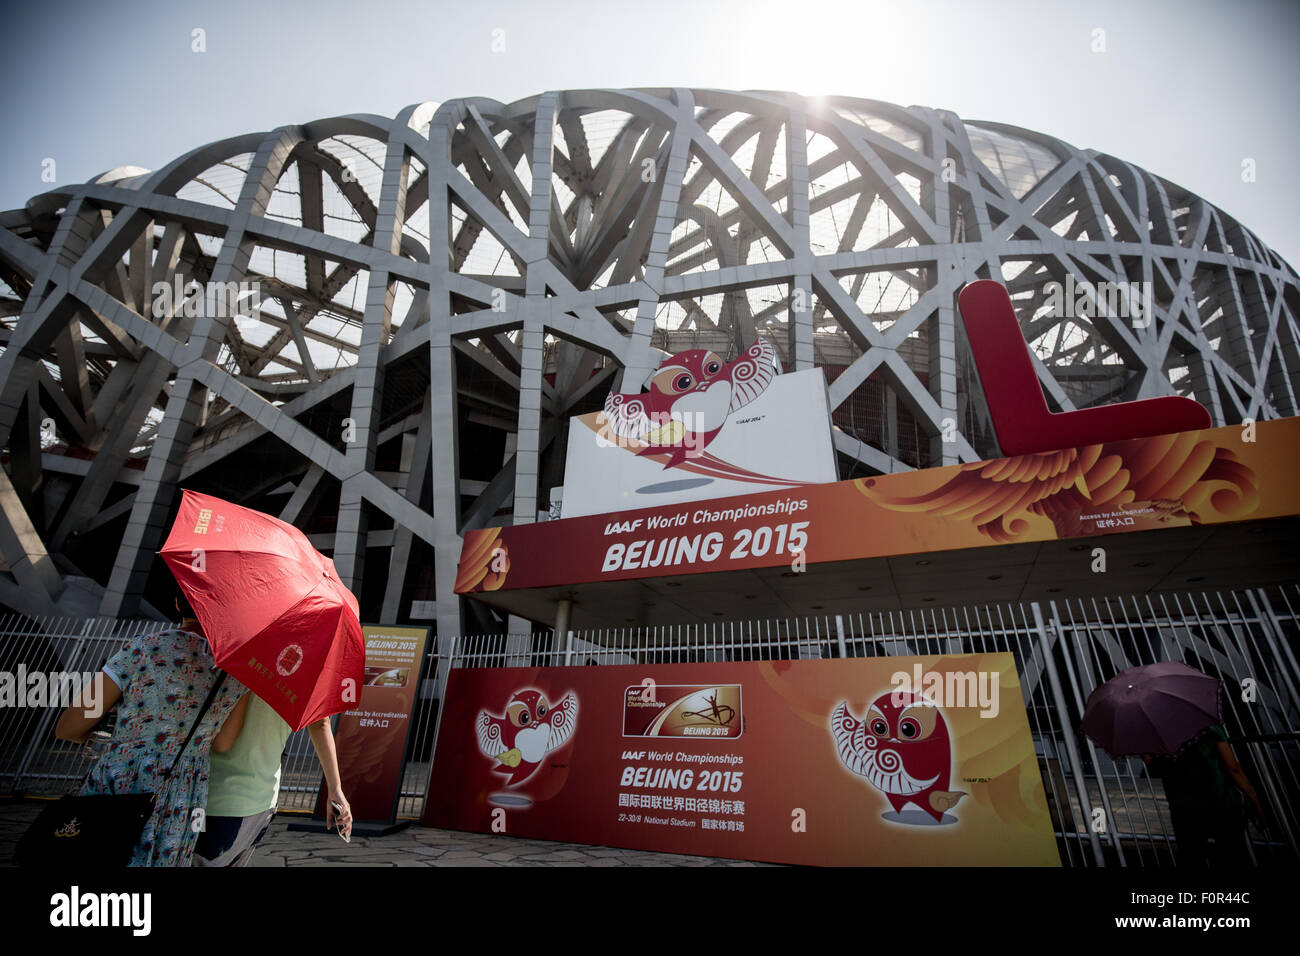 The Bird's Nest Stadium, pictured in Beijing, China, on the 20th of August 2015. The International Association - Stock Image